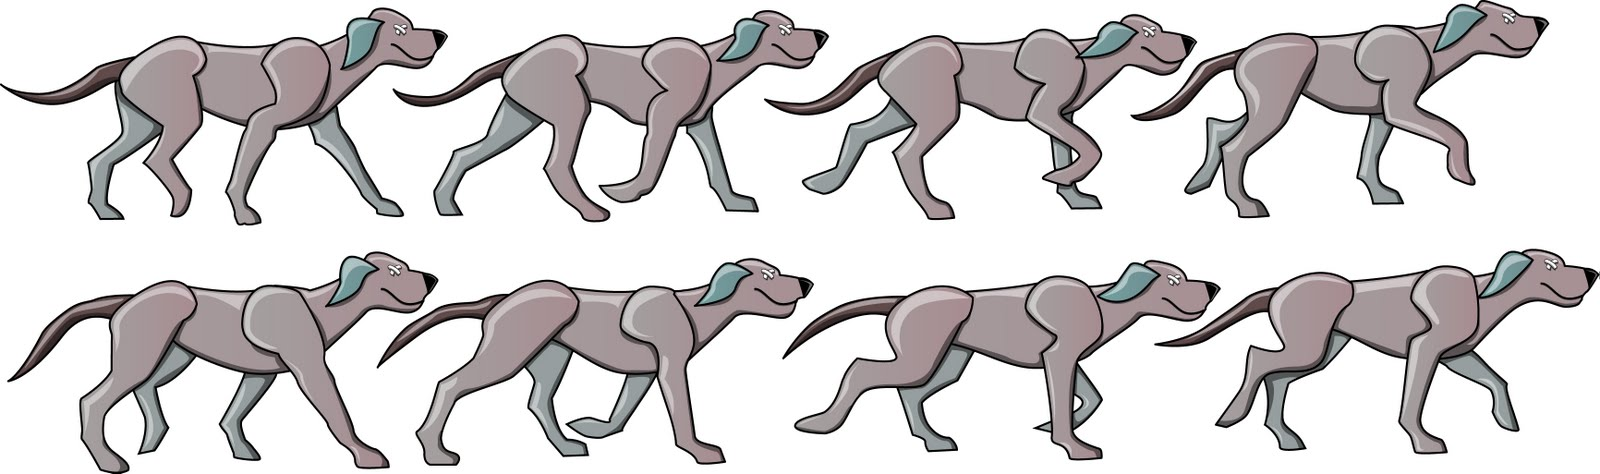 Dog Walking Animation Frames | Nakanak.org